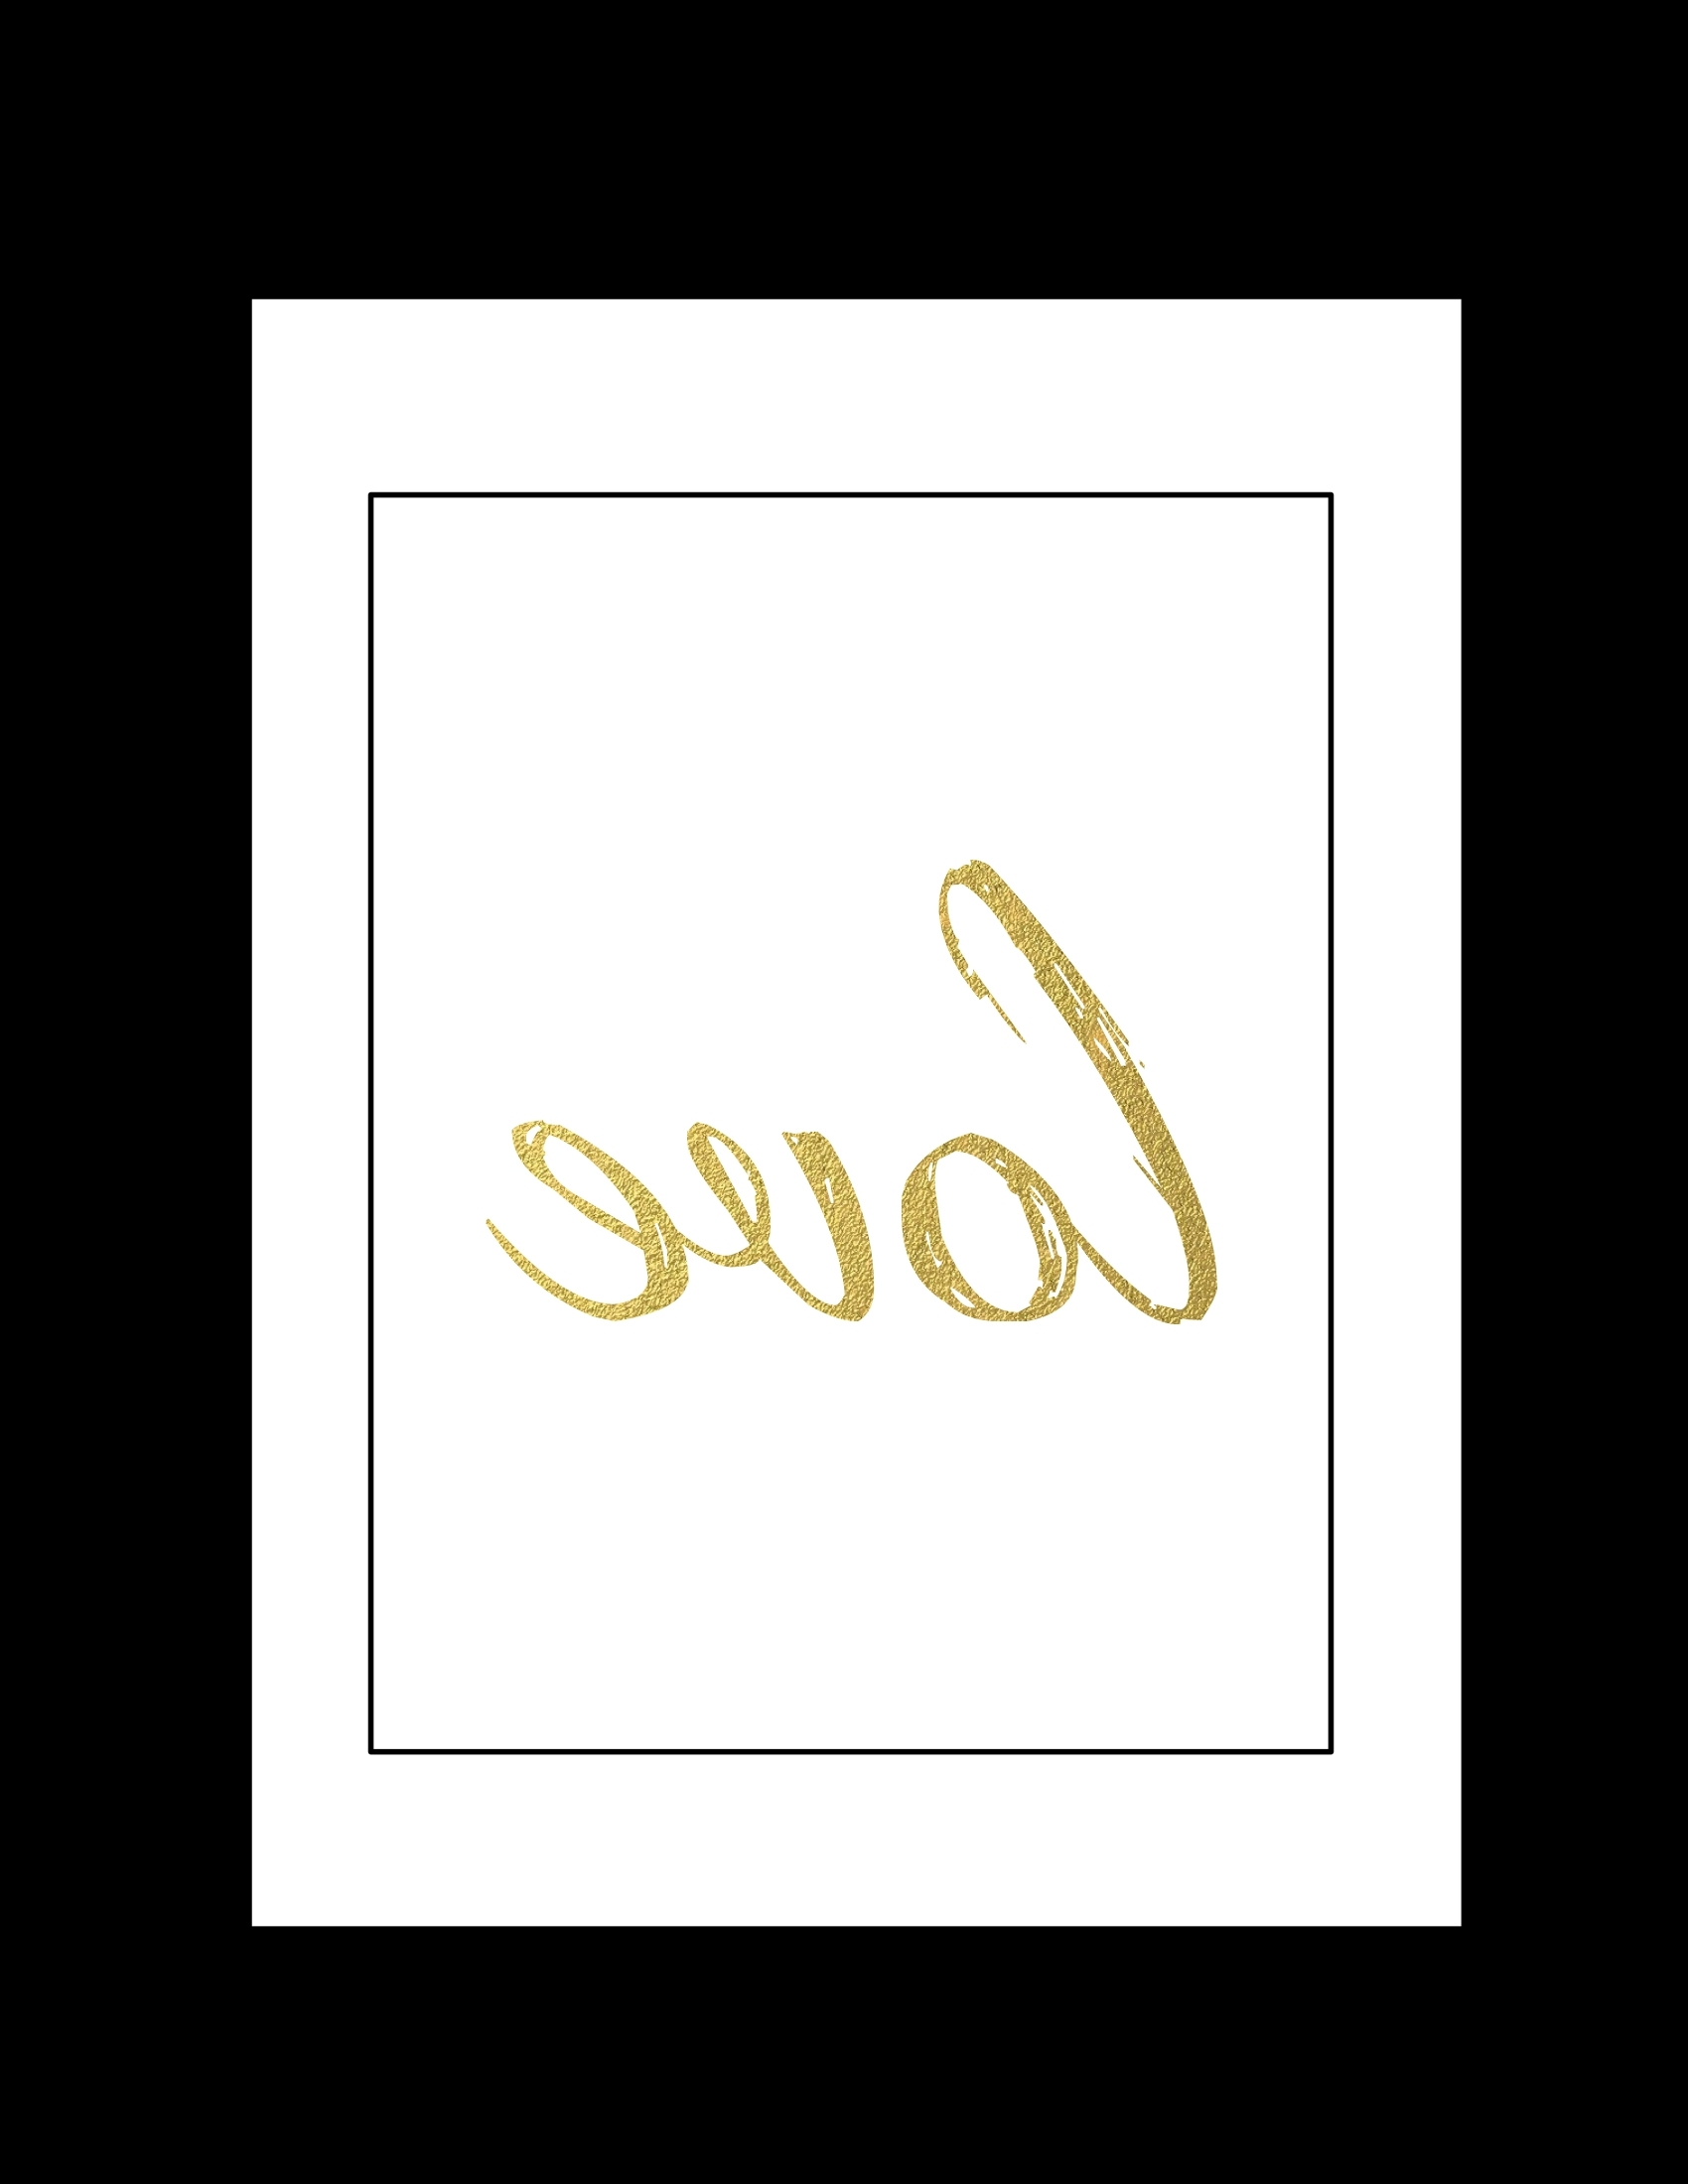 Free Printable Wall Art Decors In Famous Free Printable Wall Art: Black And Gold Love – Paper Trail Design (View 5 of 15)